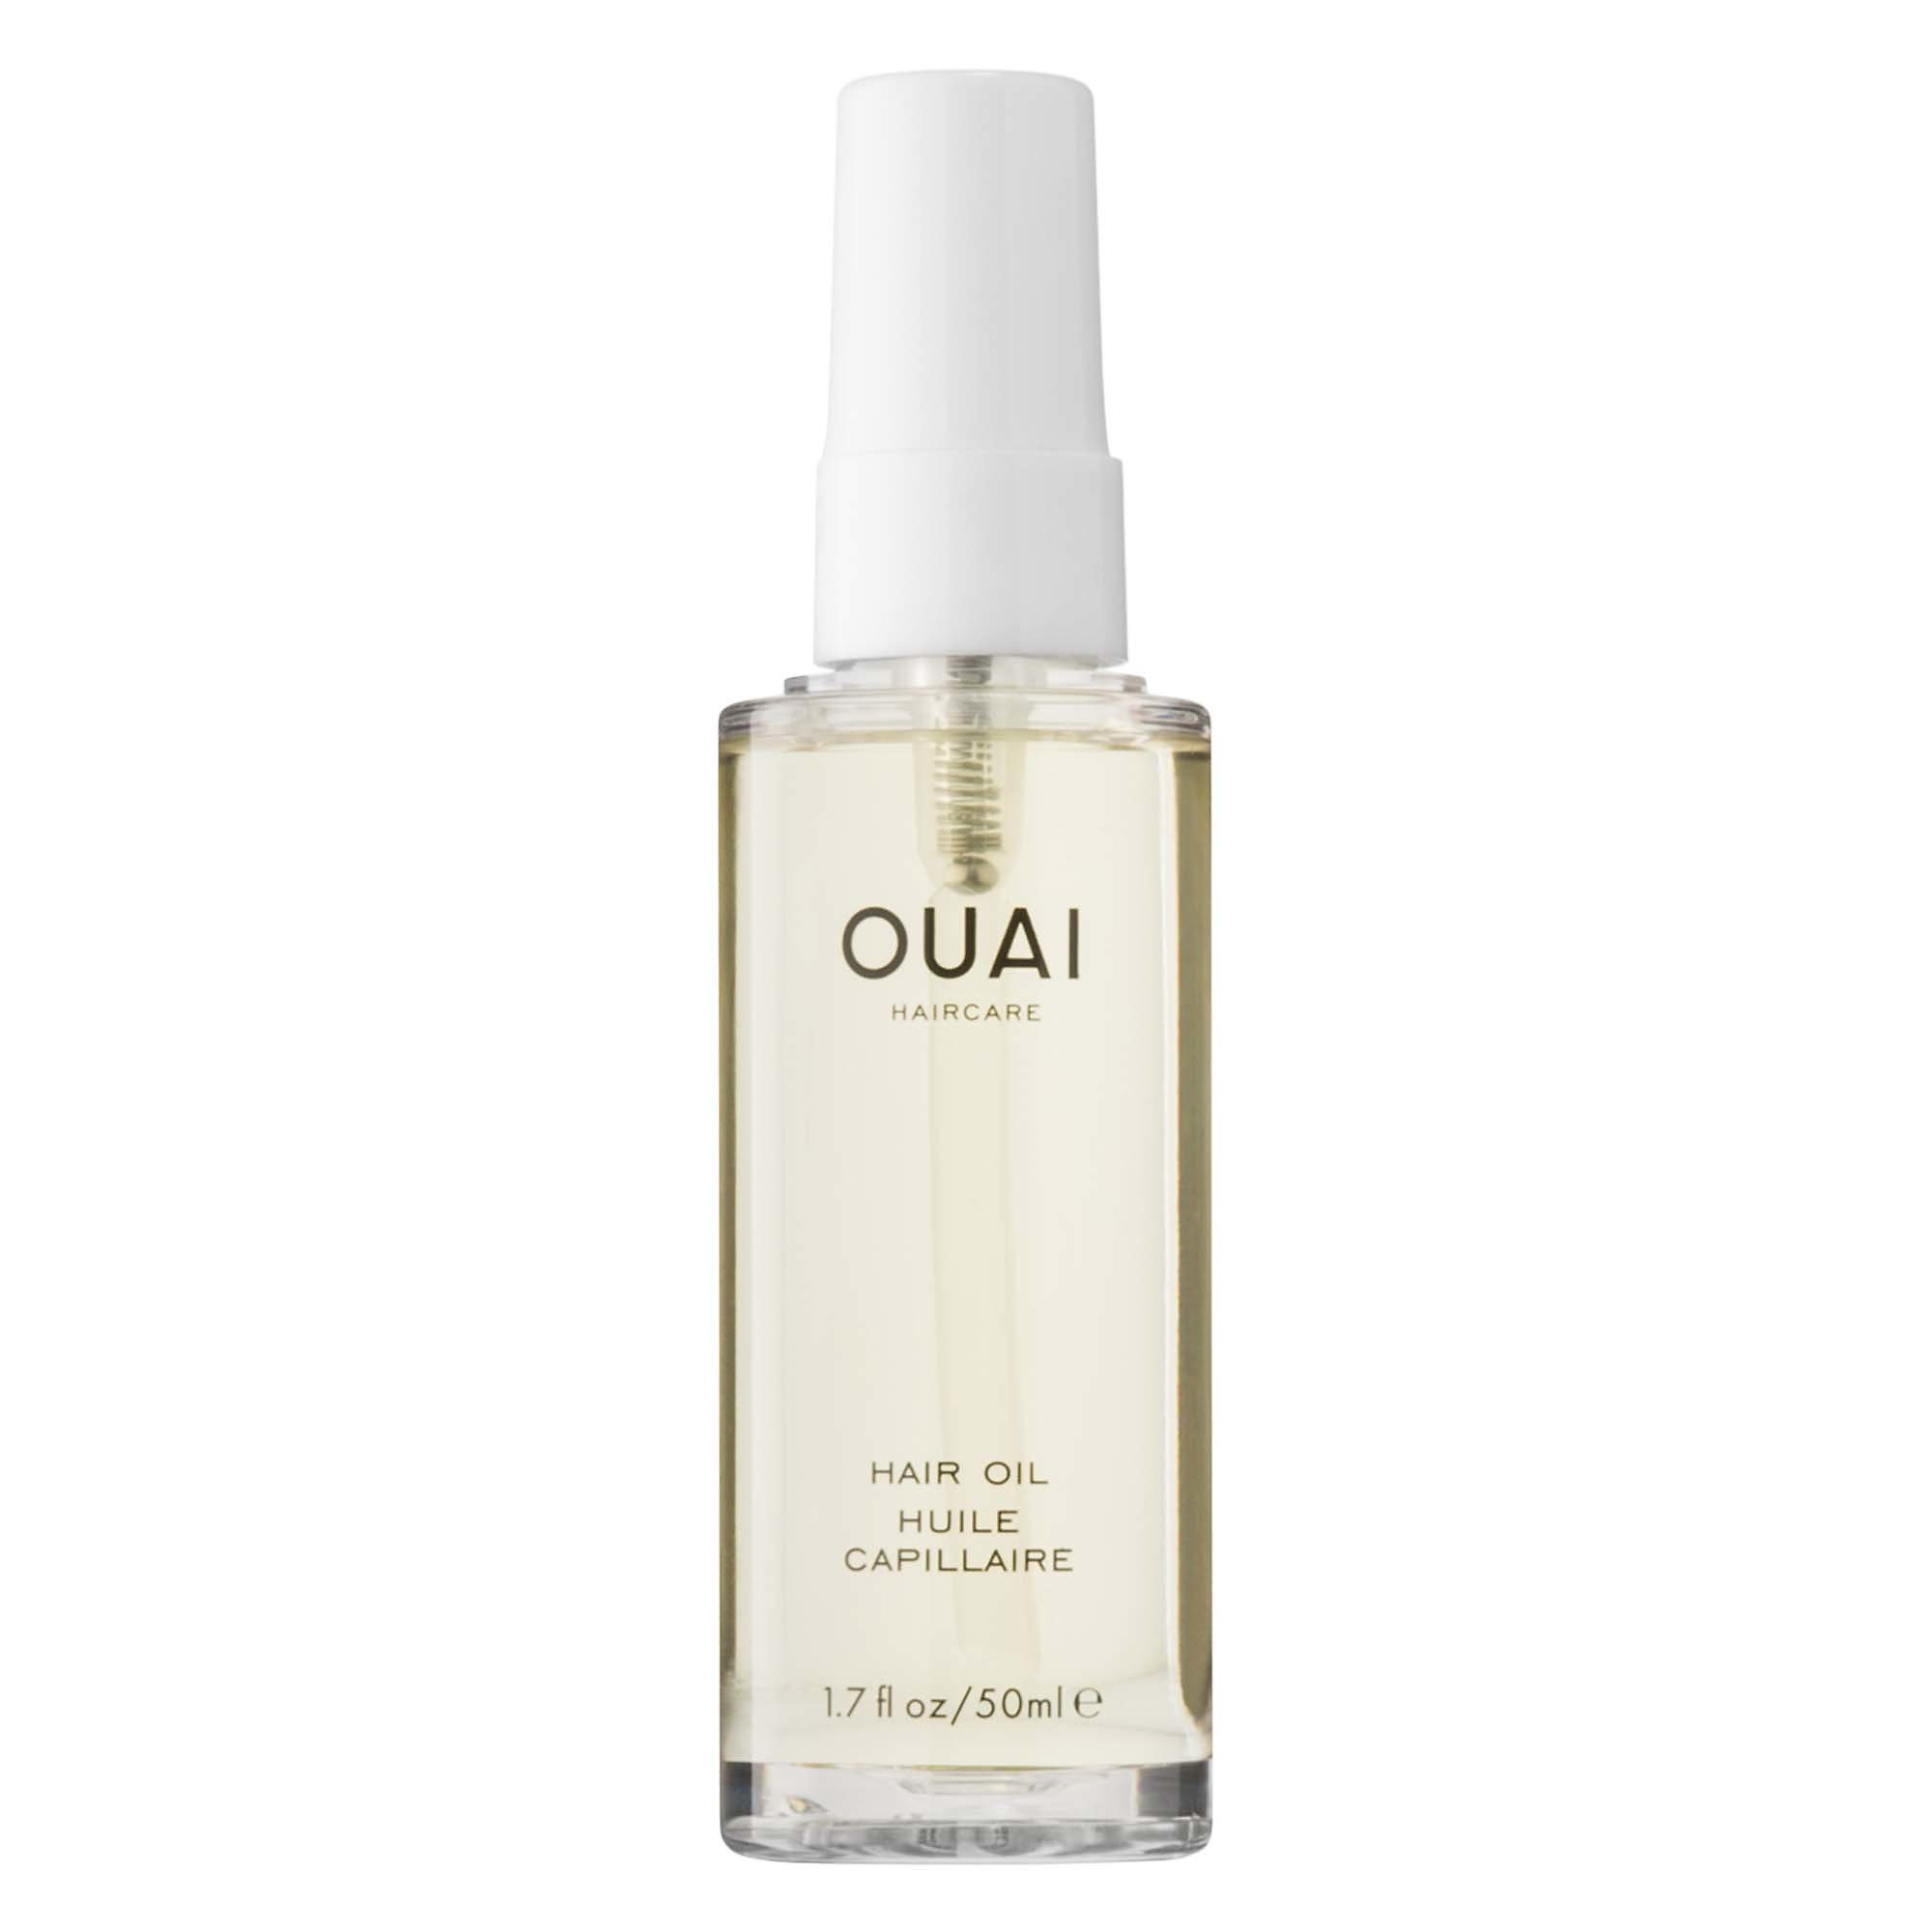 Ouai Haircare Hair Oil, $28